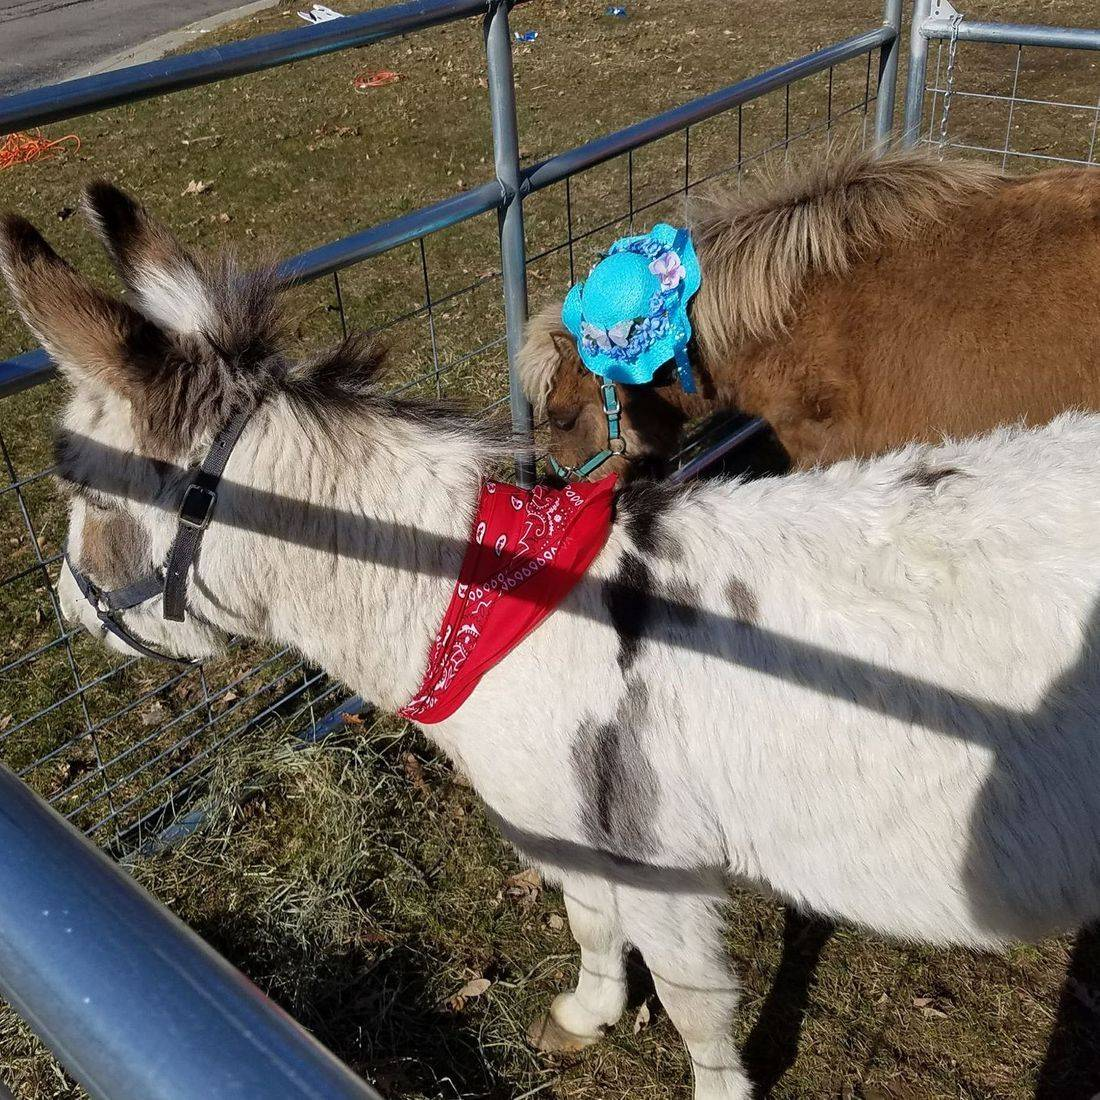 Donkey and mini horse in petting farm